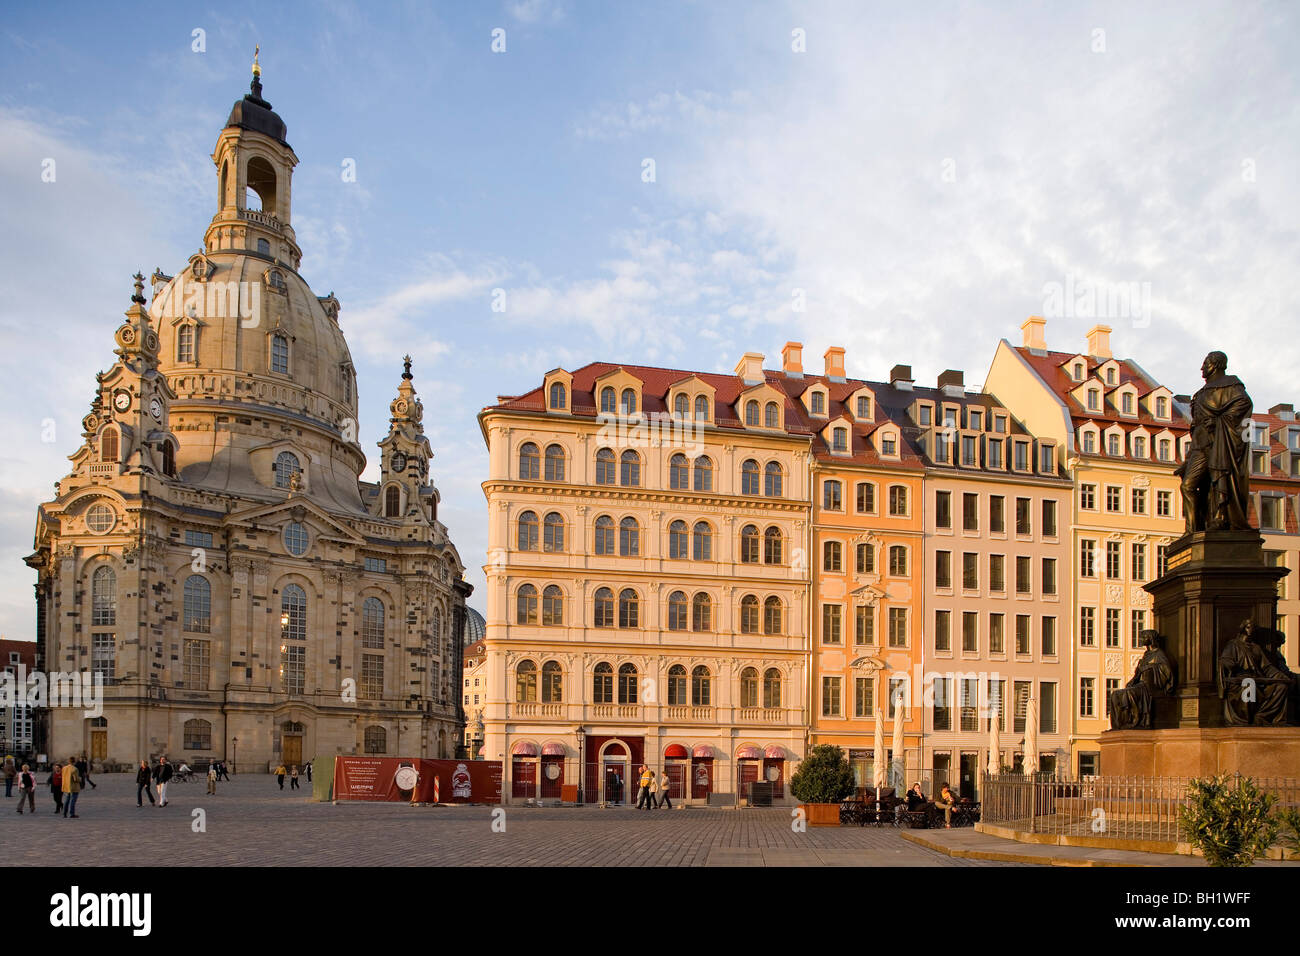 Neumarkt with Dresdner Frauenkirche, Church of Our Lady, Dresden, Saxony, Germany, Europe Stock Photo